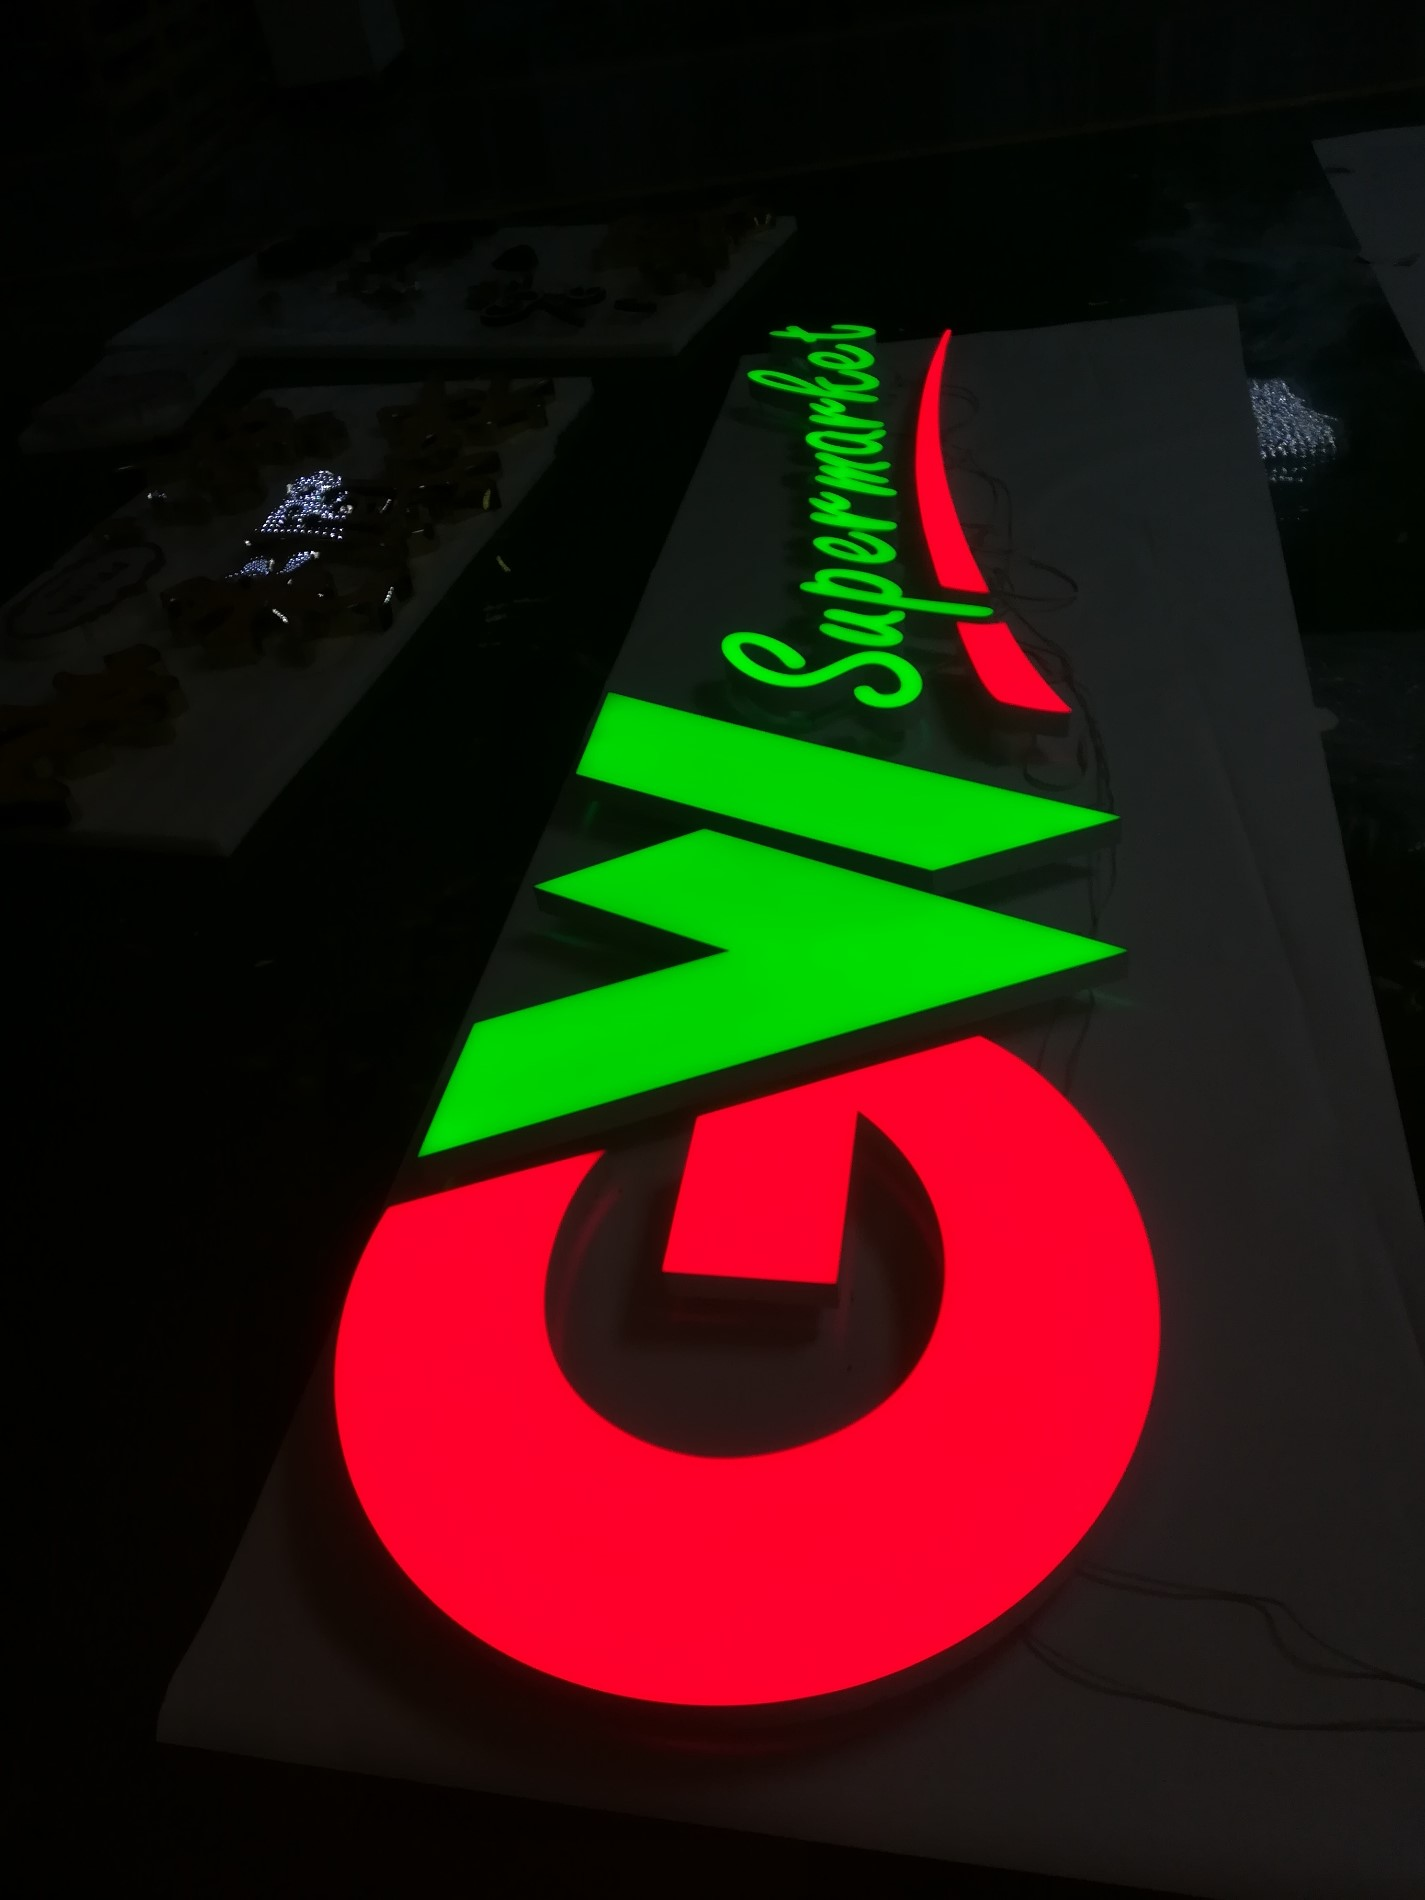 Custom Outdoor Advertising 3d Letter Channel Led Sign Manufacturers, Custom Outdoor Advertising 3d Letter Channel Led Sign Factory, Supply Custom Outdoor Advertising 3d Letter Channel Led Sign